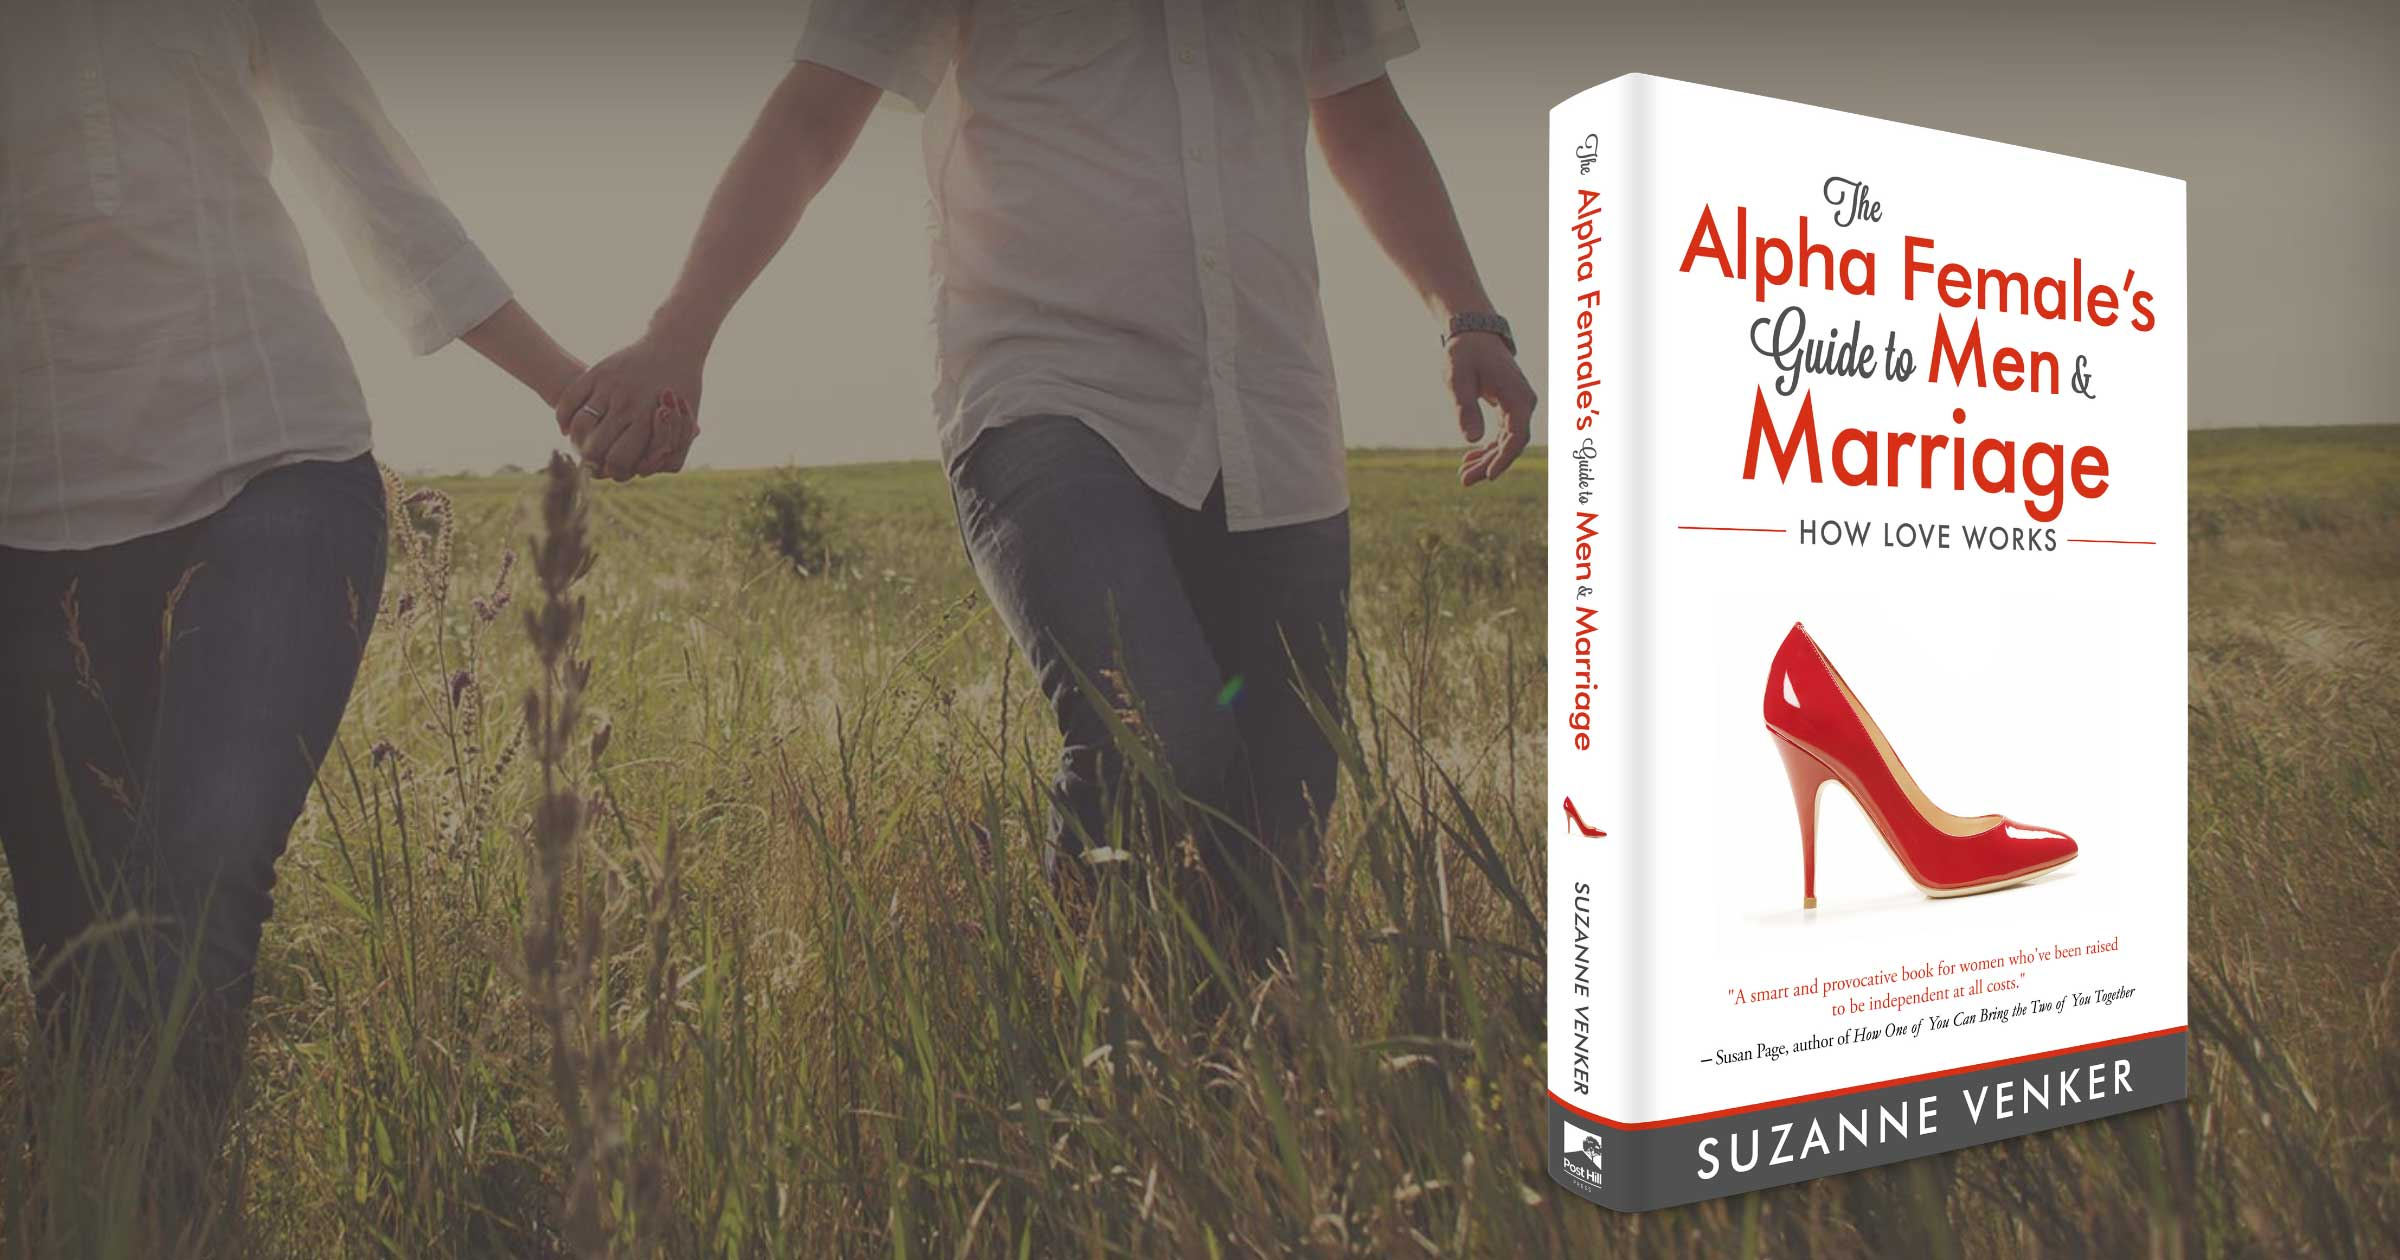 The Alpha Female's Guide to Men & Marriage: HOW LOVE WORKS